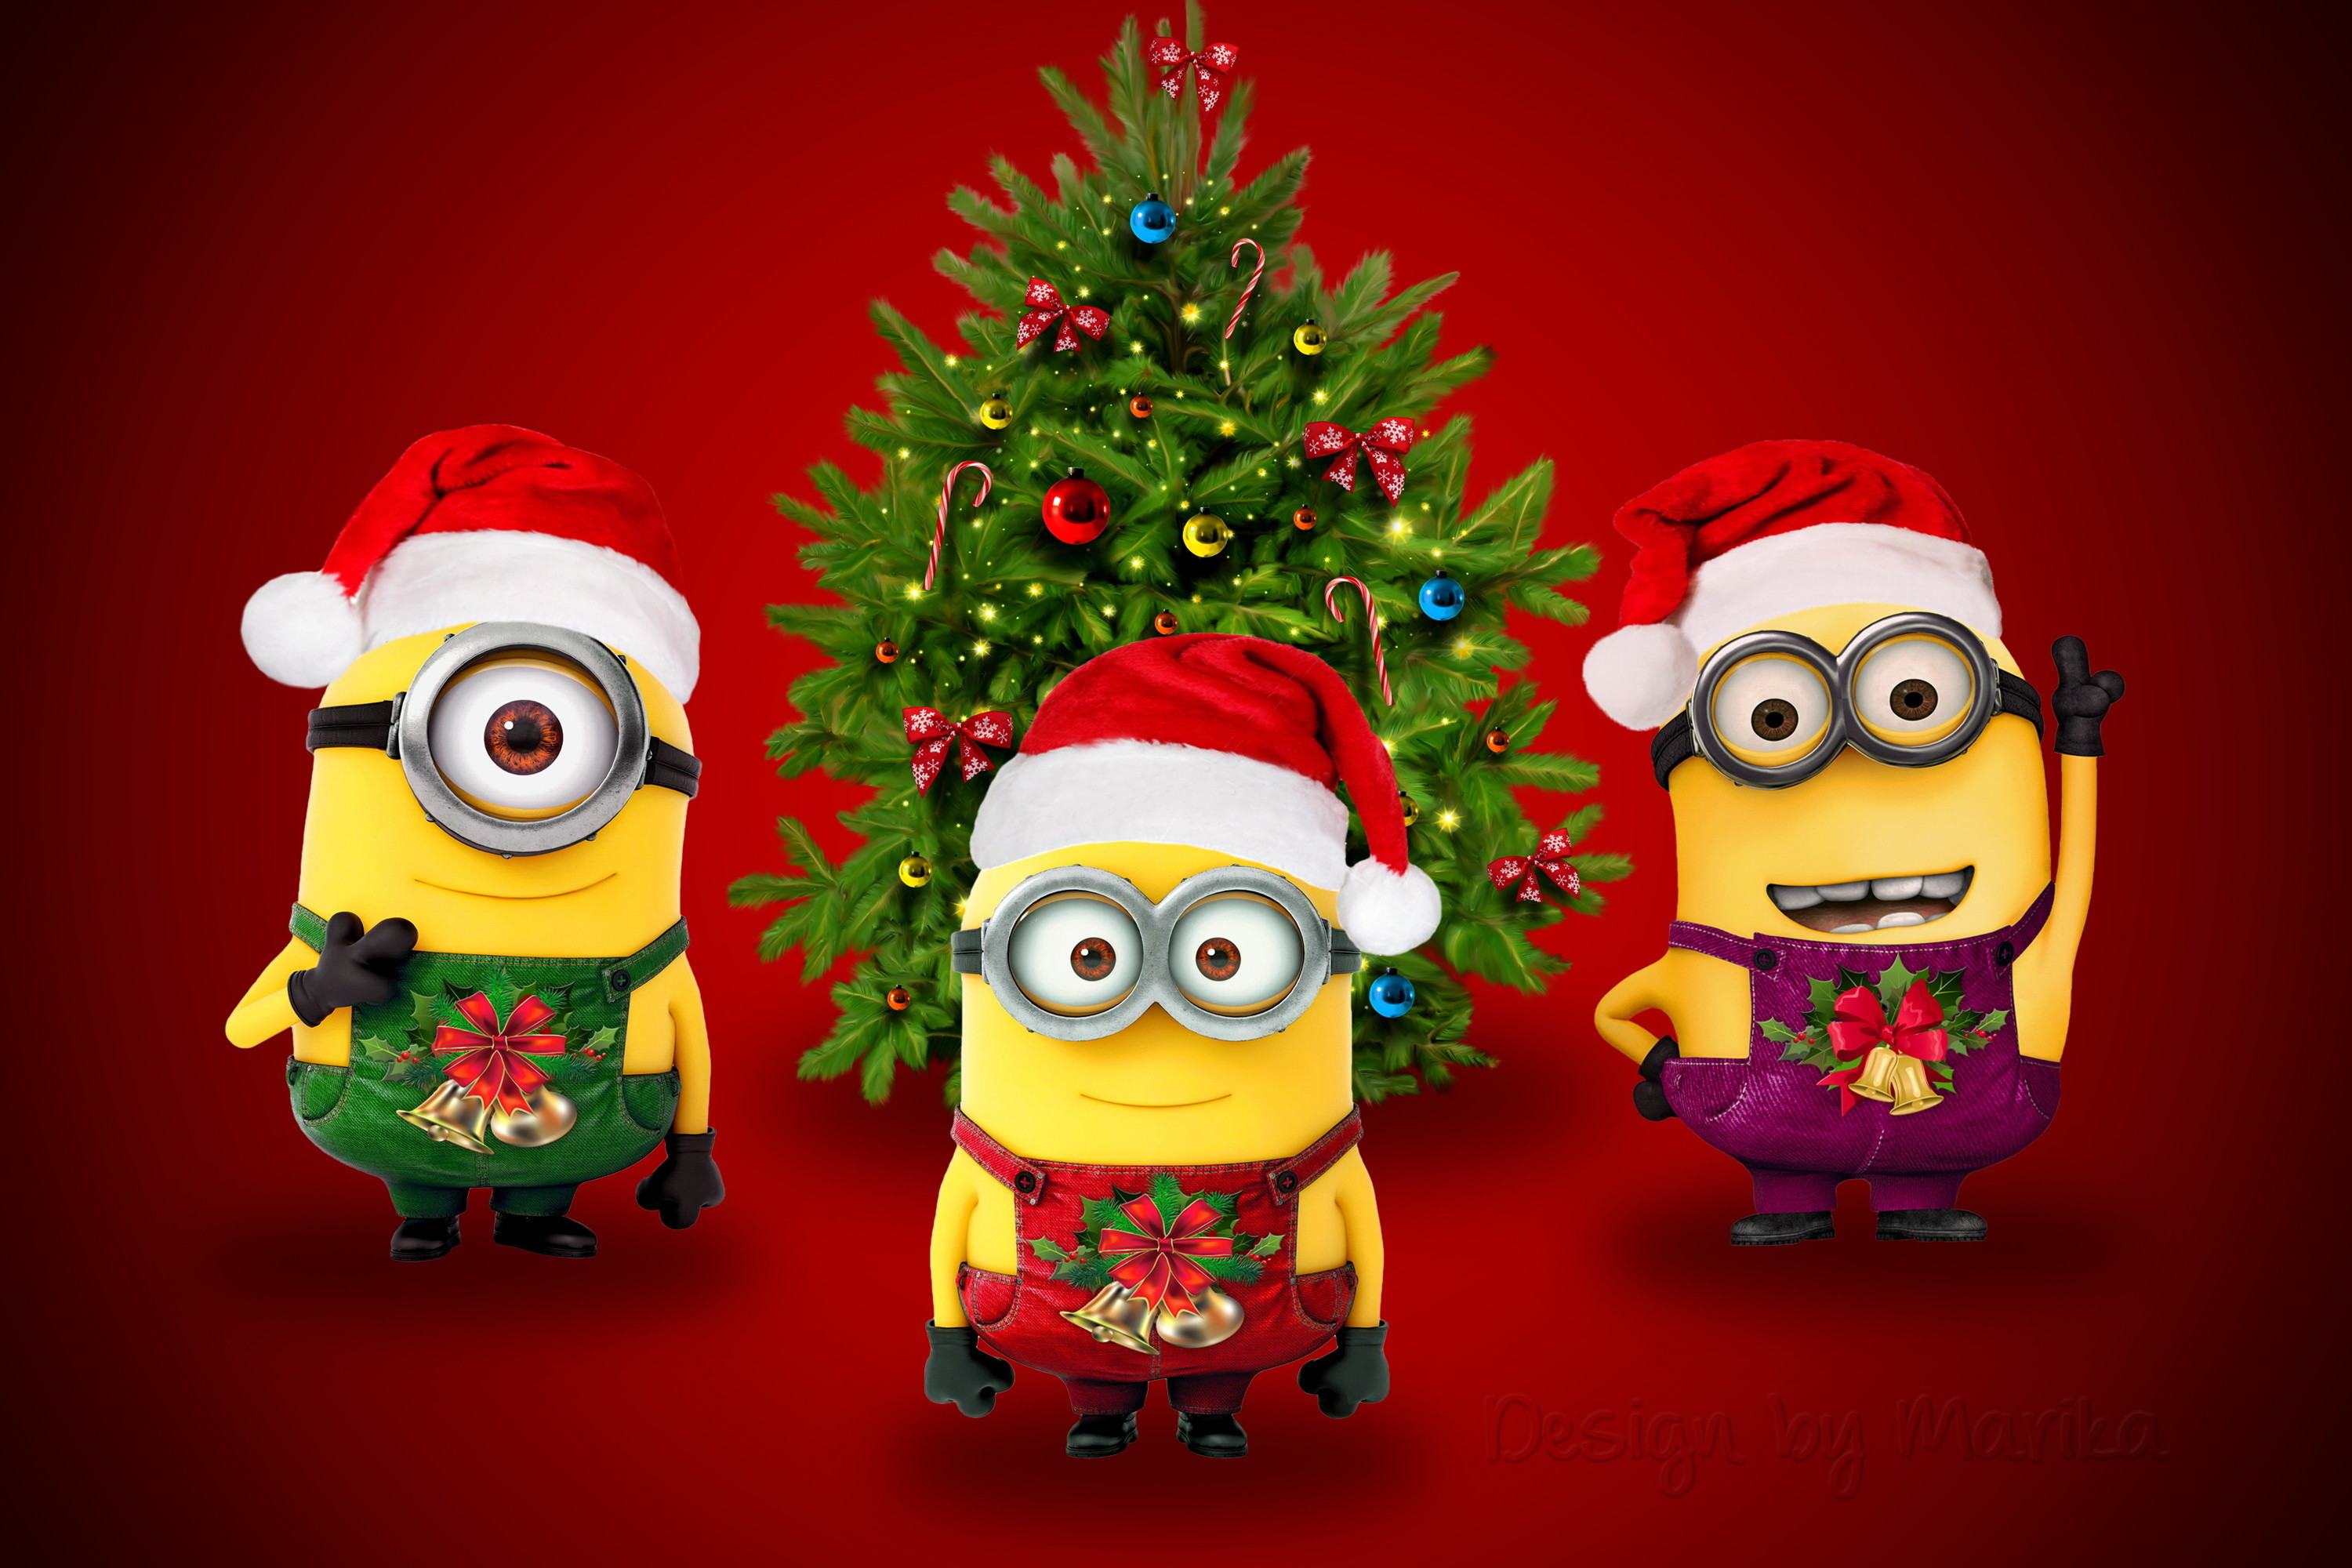 3000x2000 Minions Christmas Desktop Wallpapers